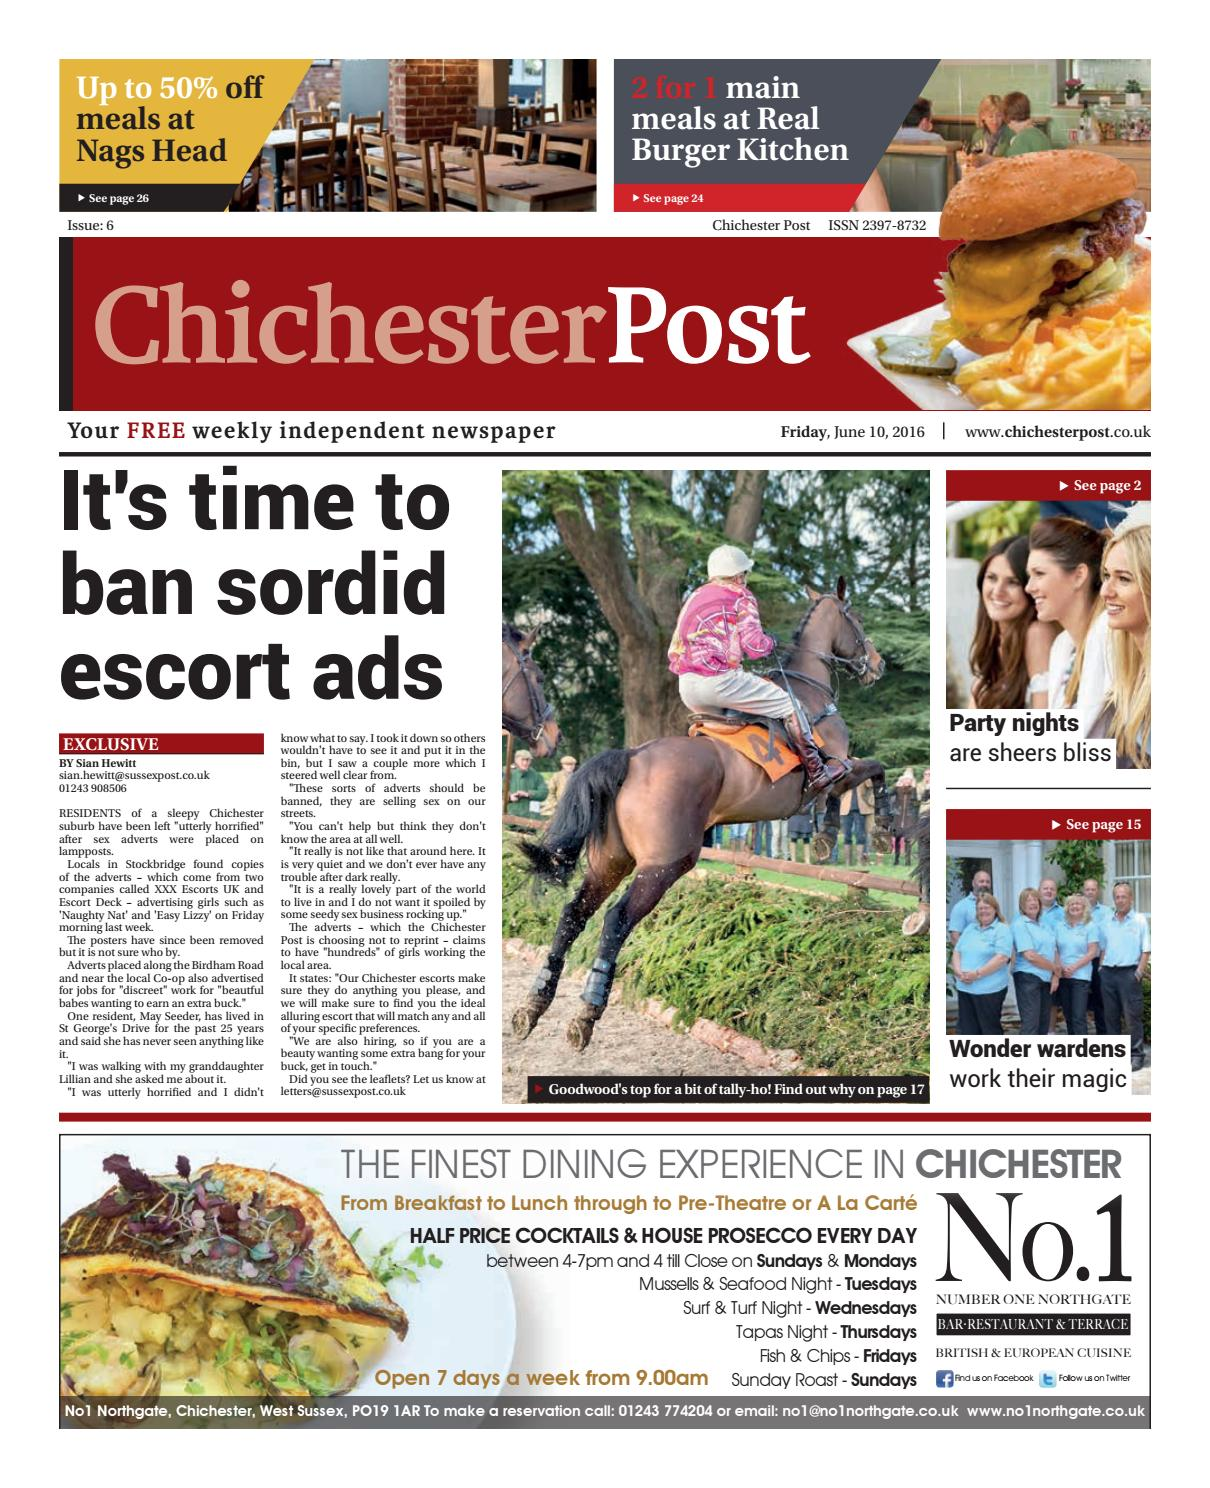 Chichester Post issue 6